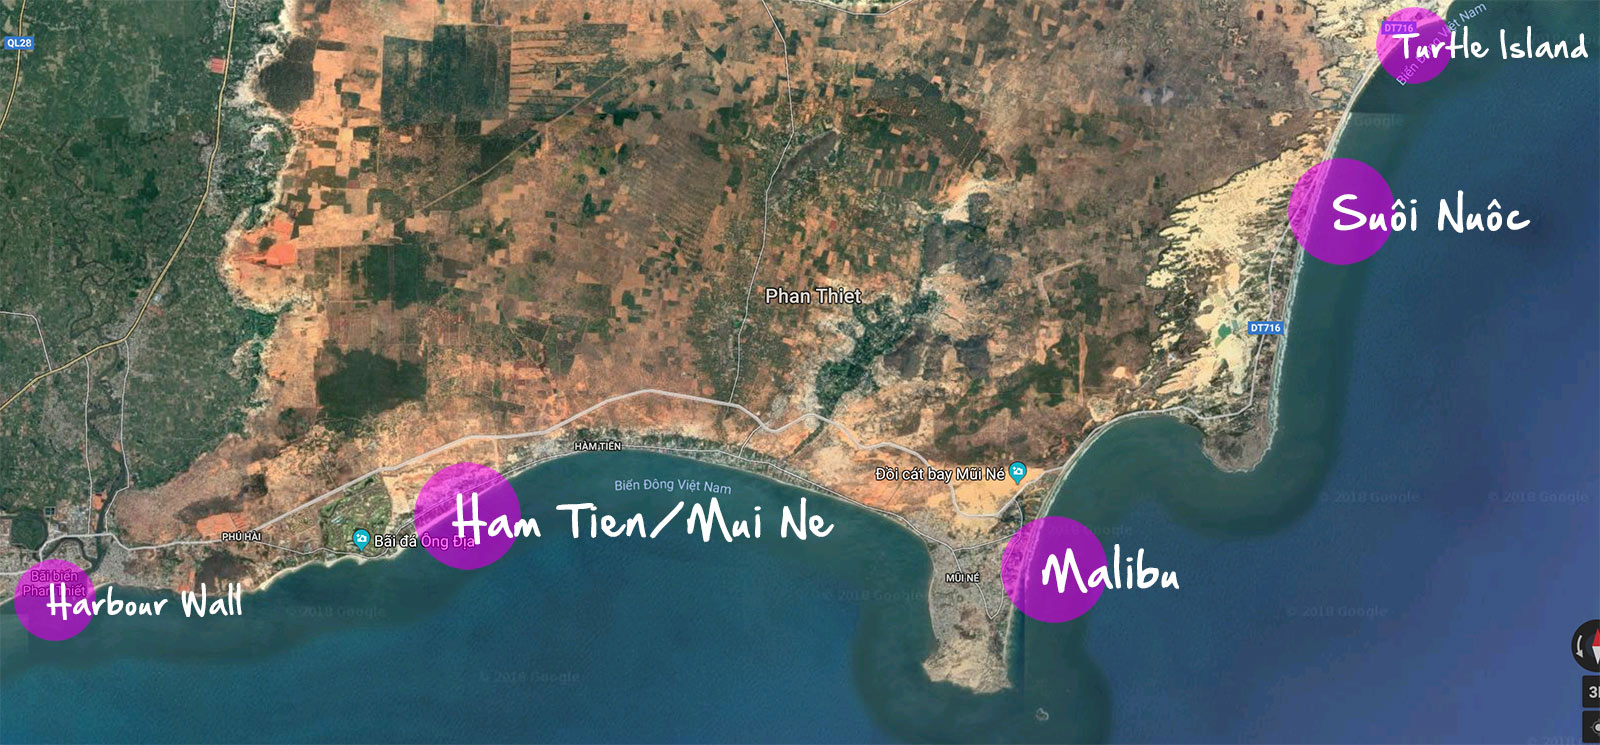 Map over kitesurf spots around Mui Ne, Vietnam.